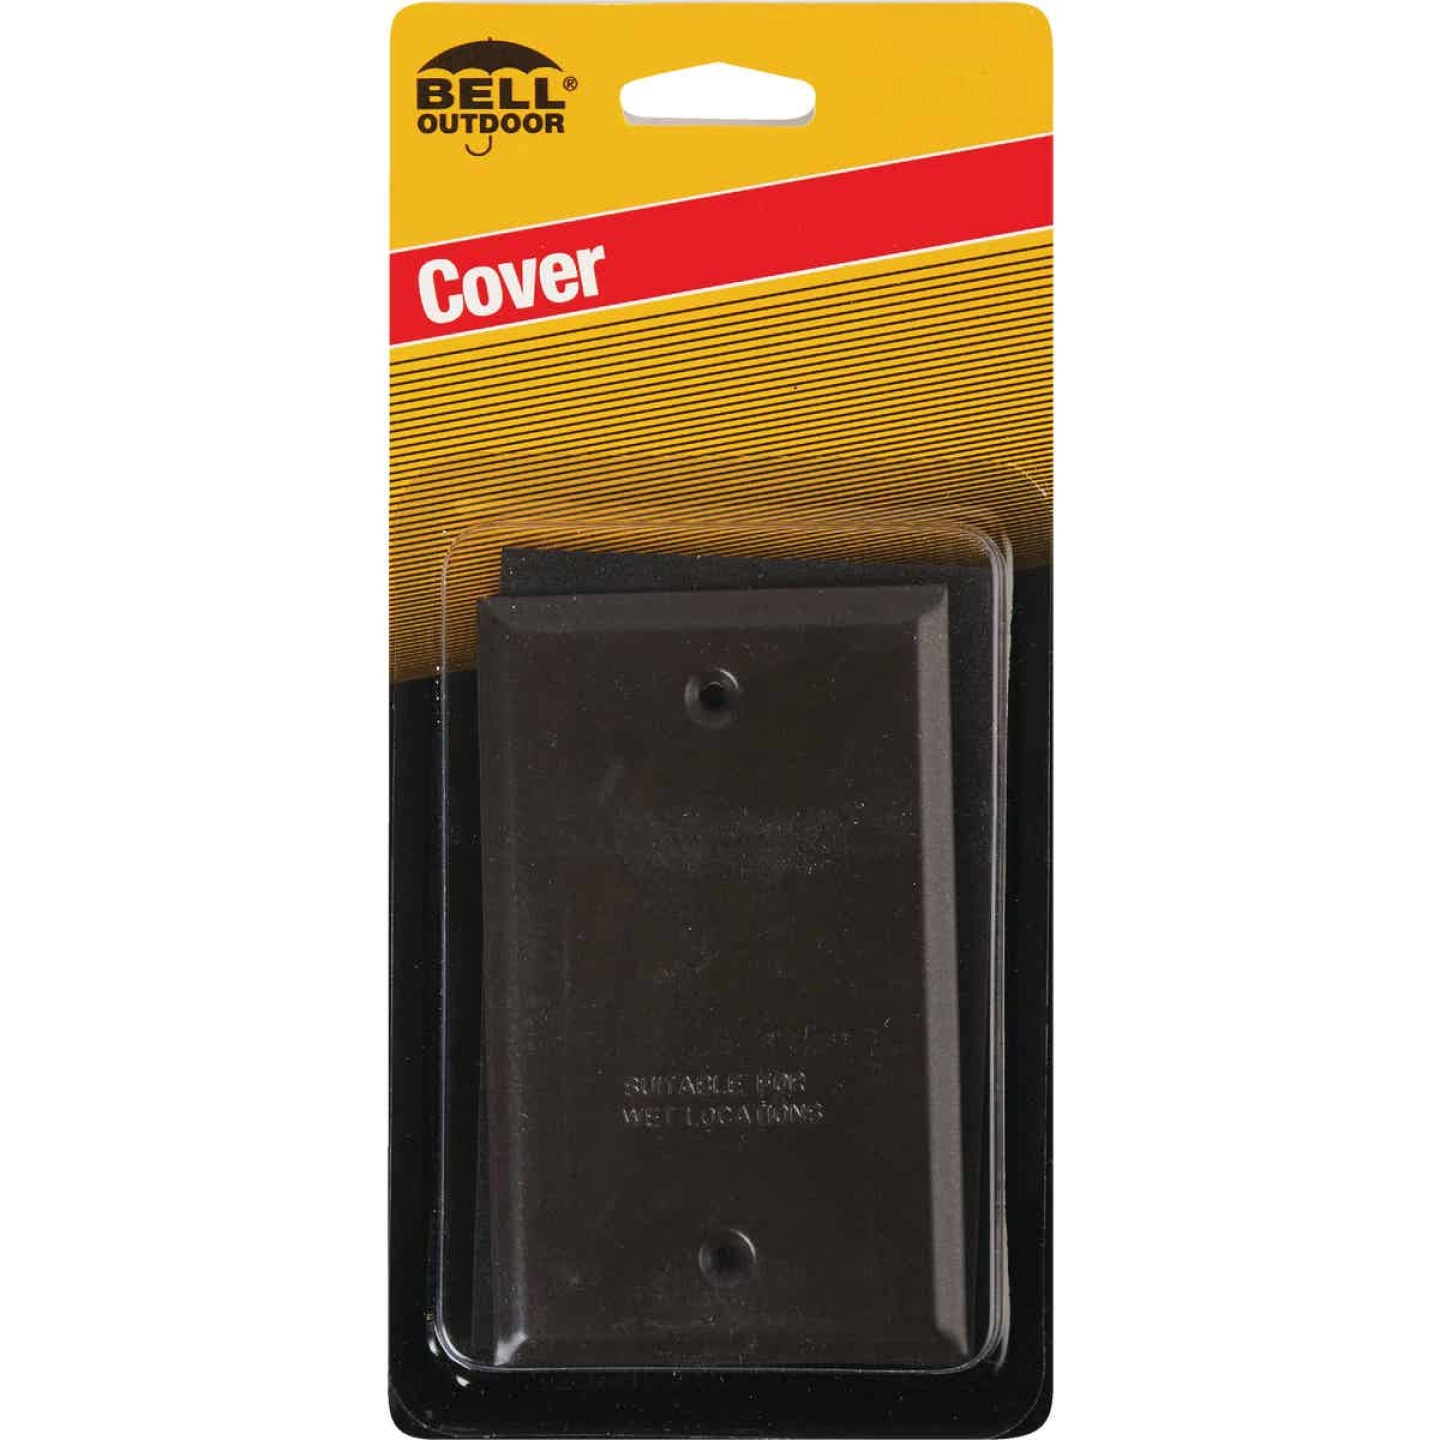 Bell Single Gang Rectangular Die-Cast Metal Bronze Blank Outdoor Box Cover Image 2